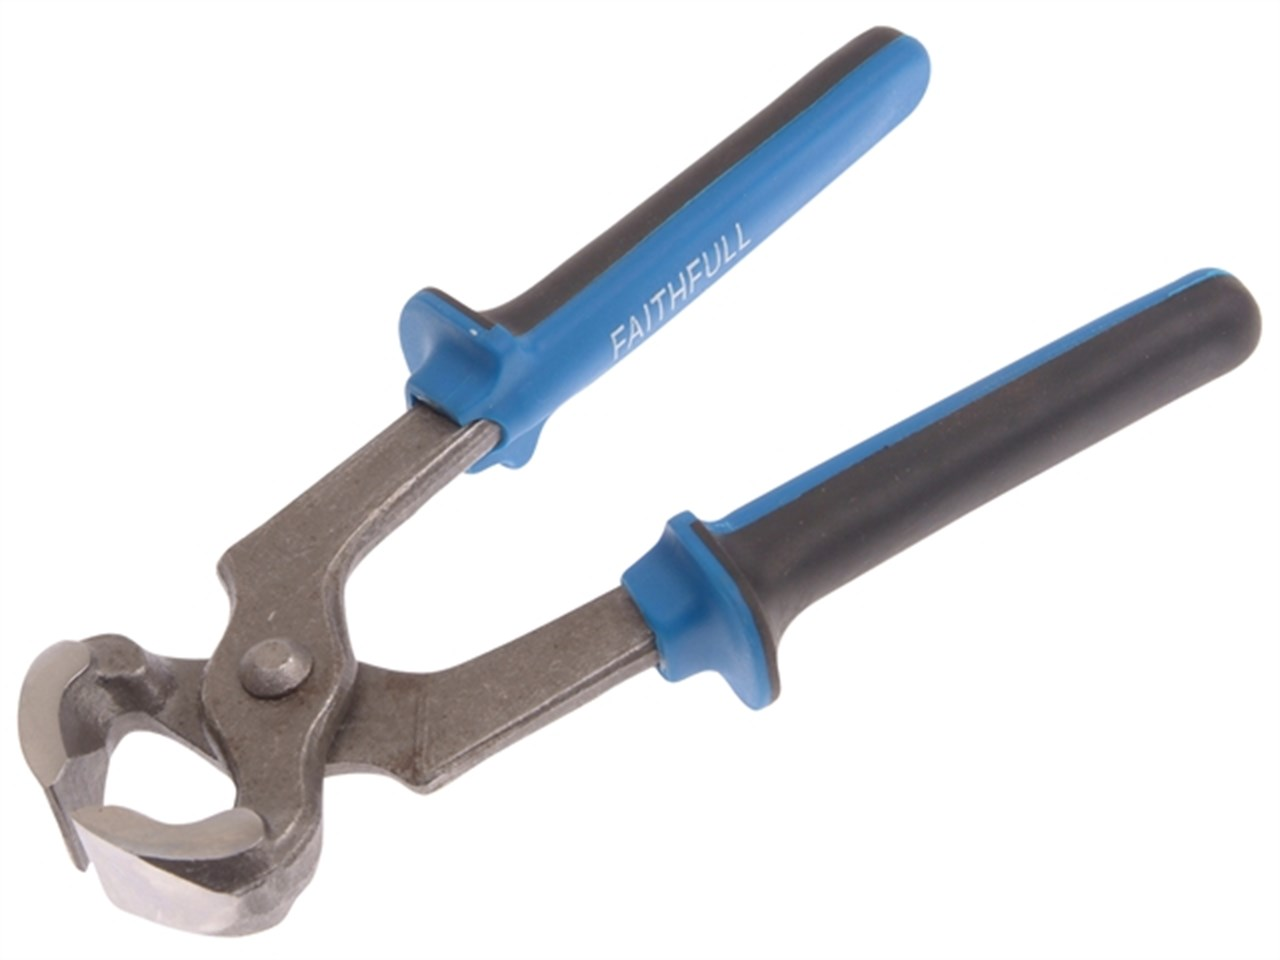 Faithfull/ Carpenters Pincers 7in Soft Grip